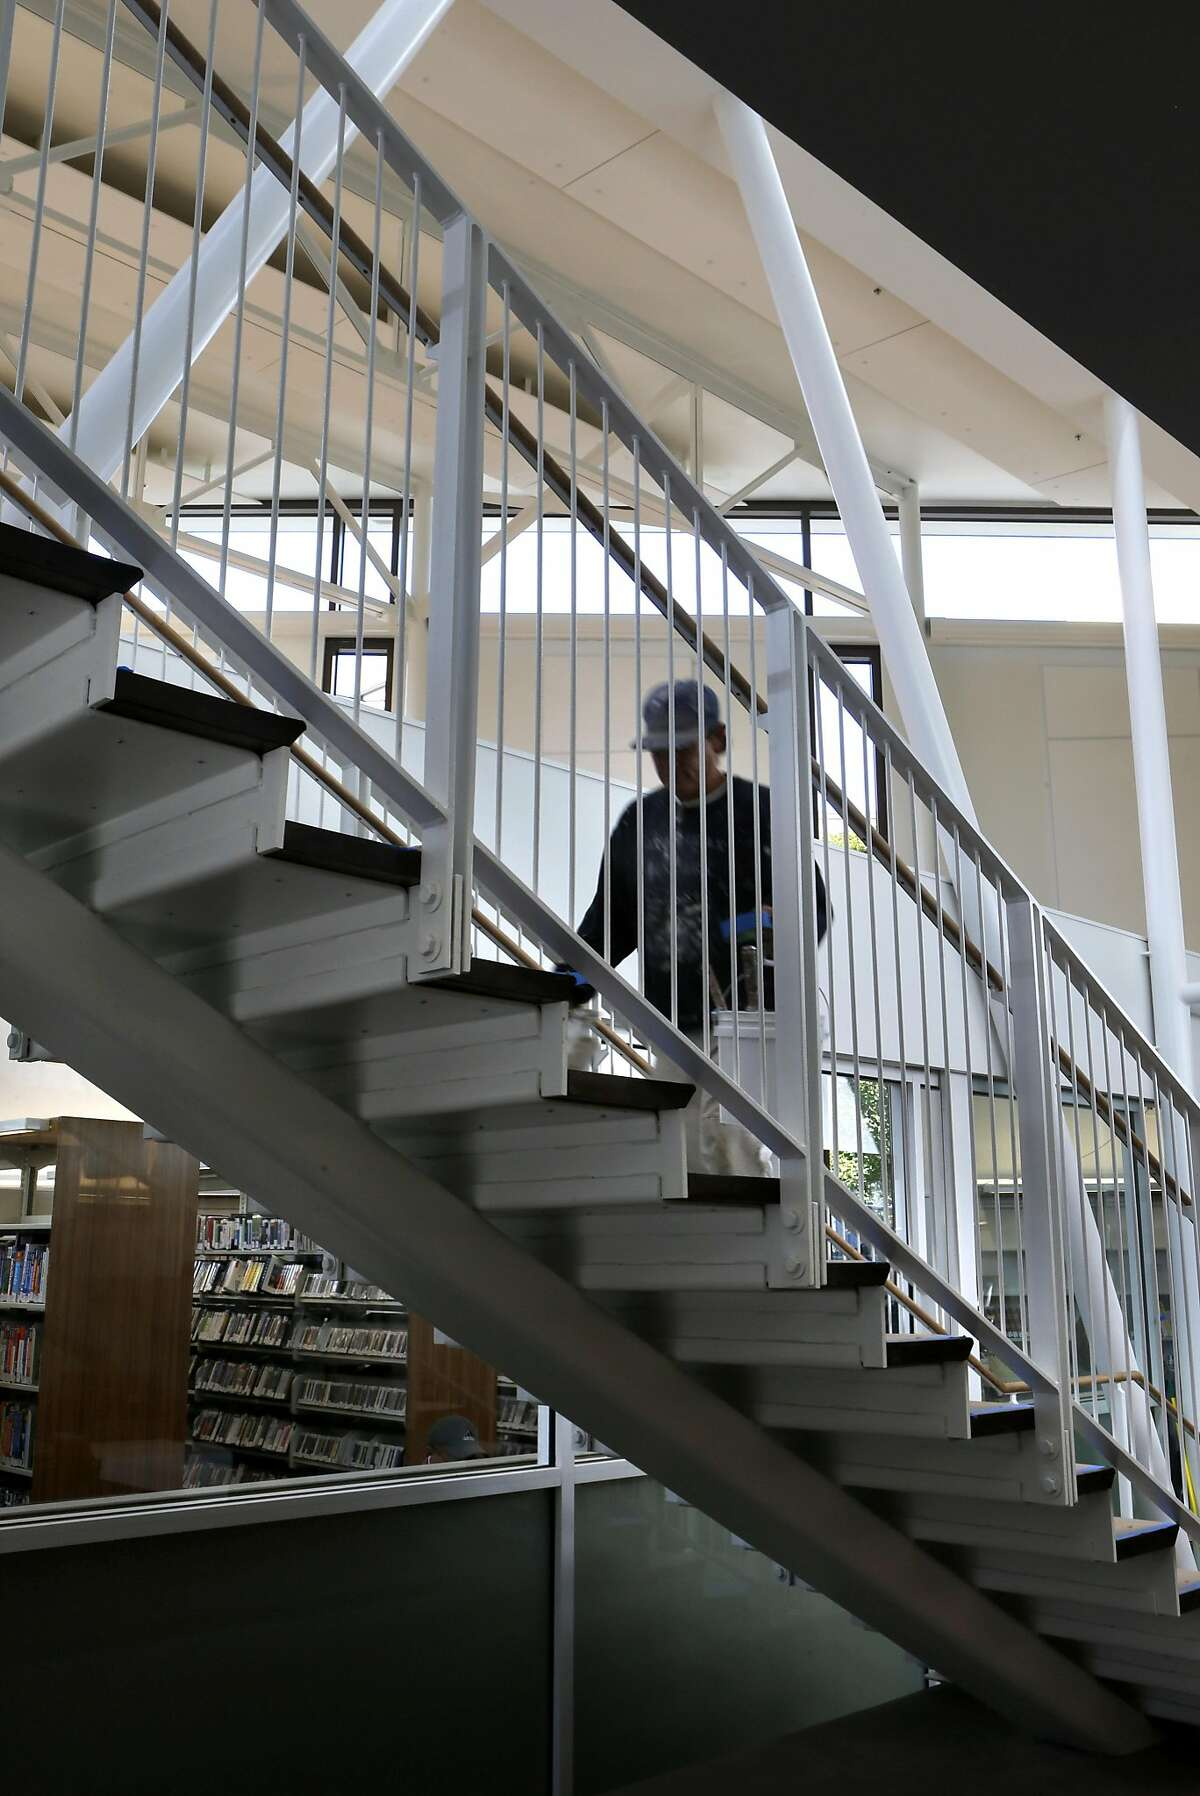 An interior stairway at the North Beach branch library as seen on Wednesday May 7, 2014, in San Francisco, Calif. With the North Beach branch library scheduled to open on May 10, 2014, the overall San Francisco branch library restoration program is nearing completion.